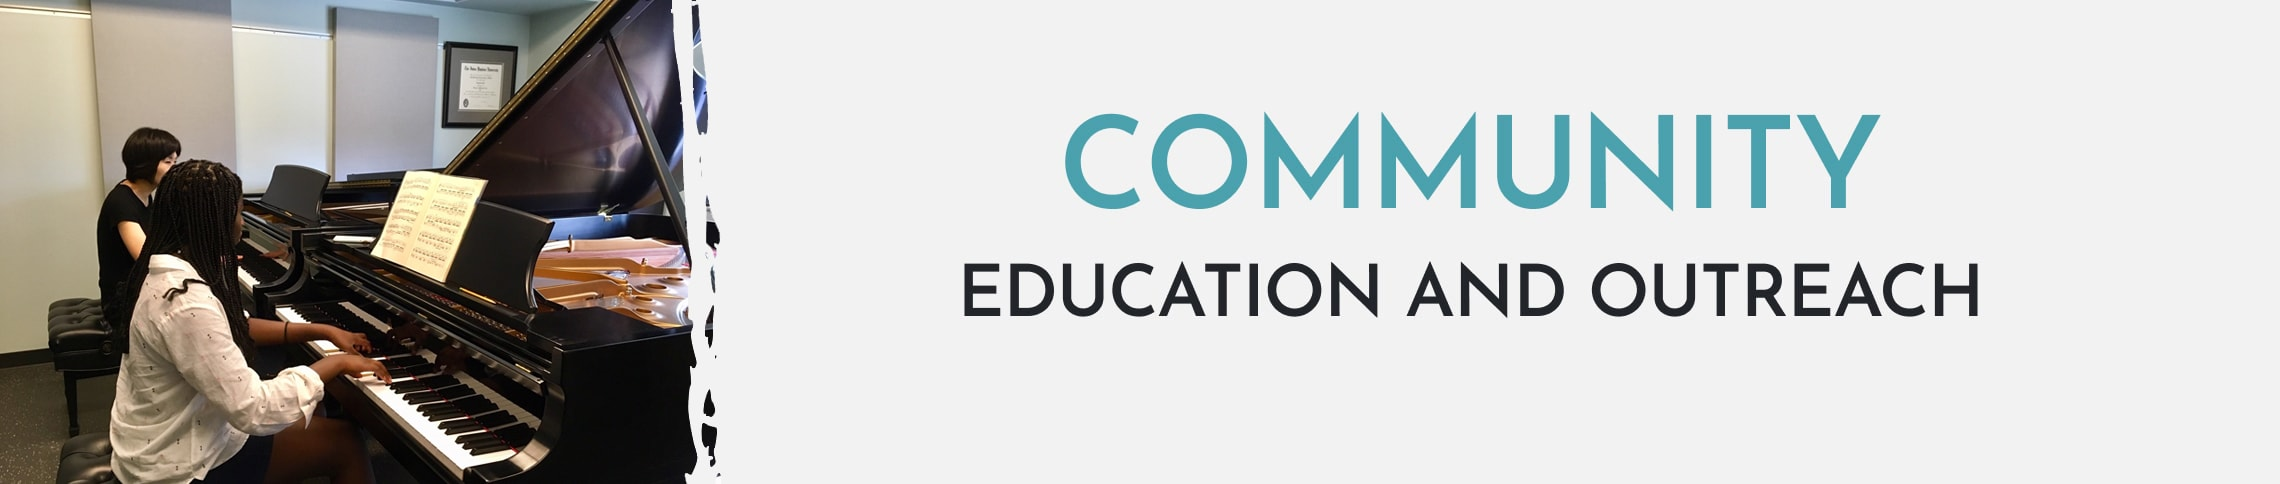 Community Education and Outreach